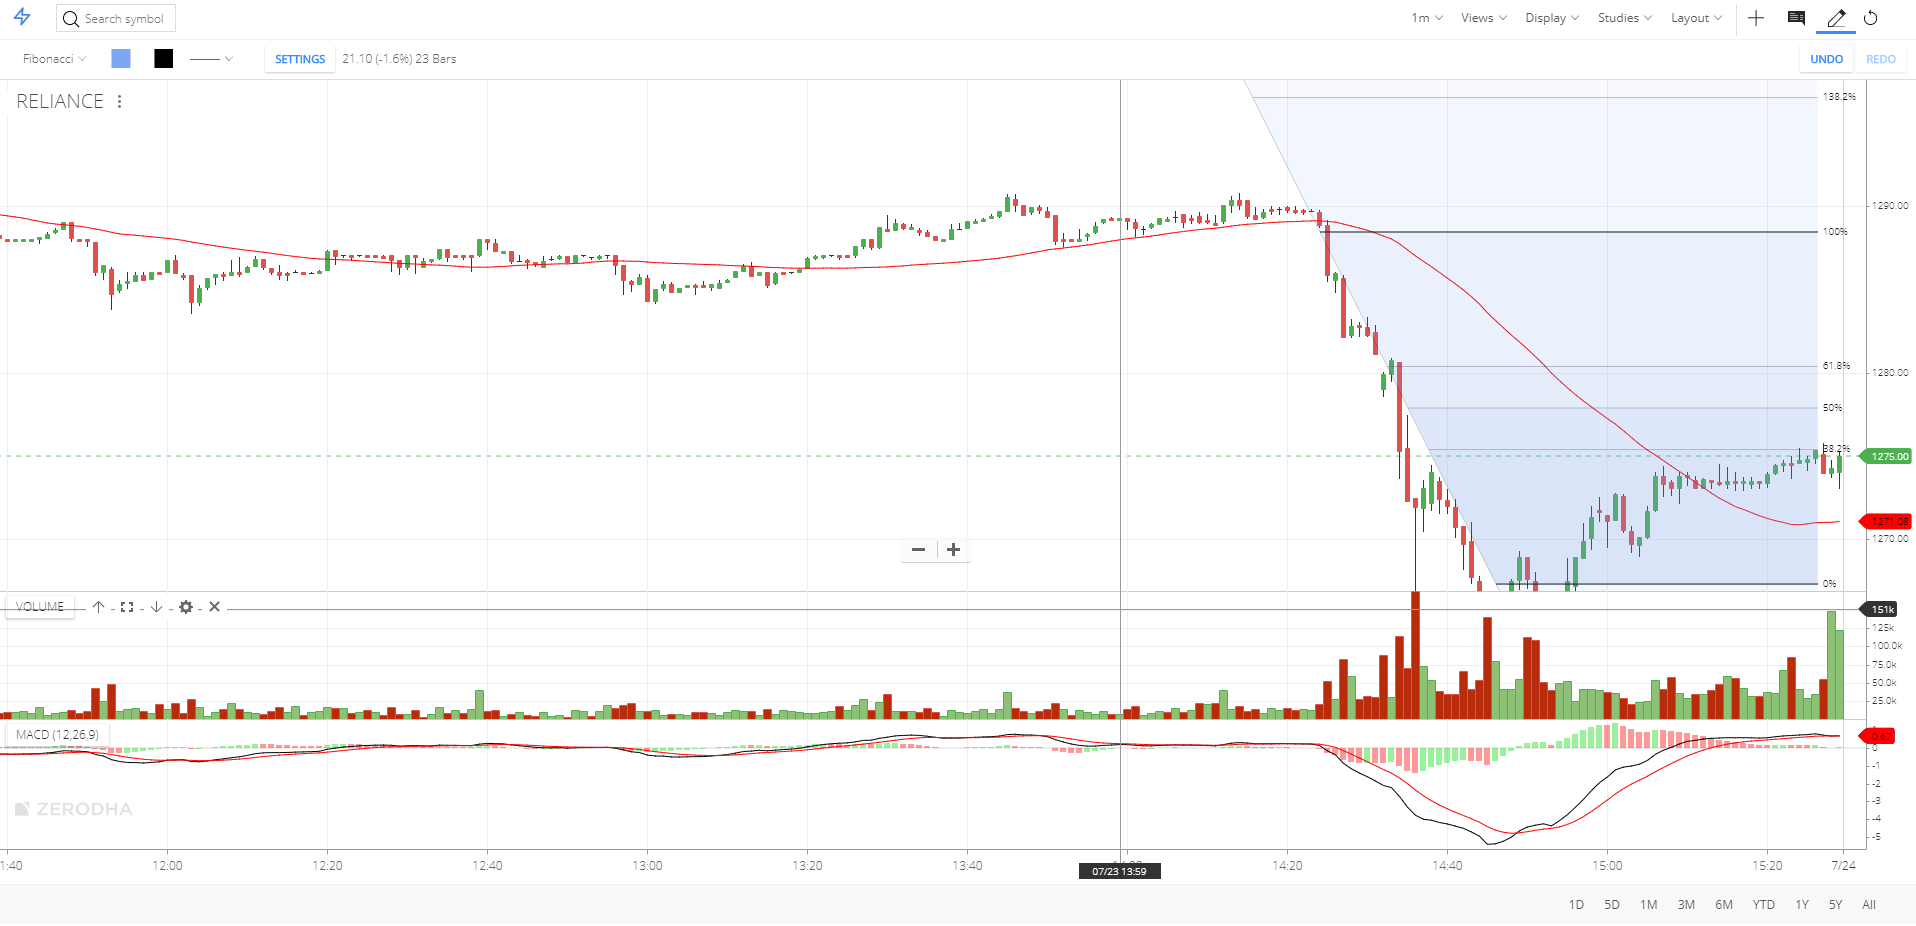 Zerodha review - Research - Charting